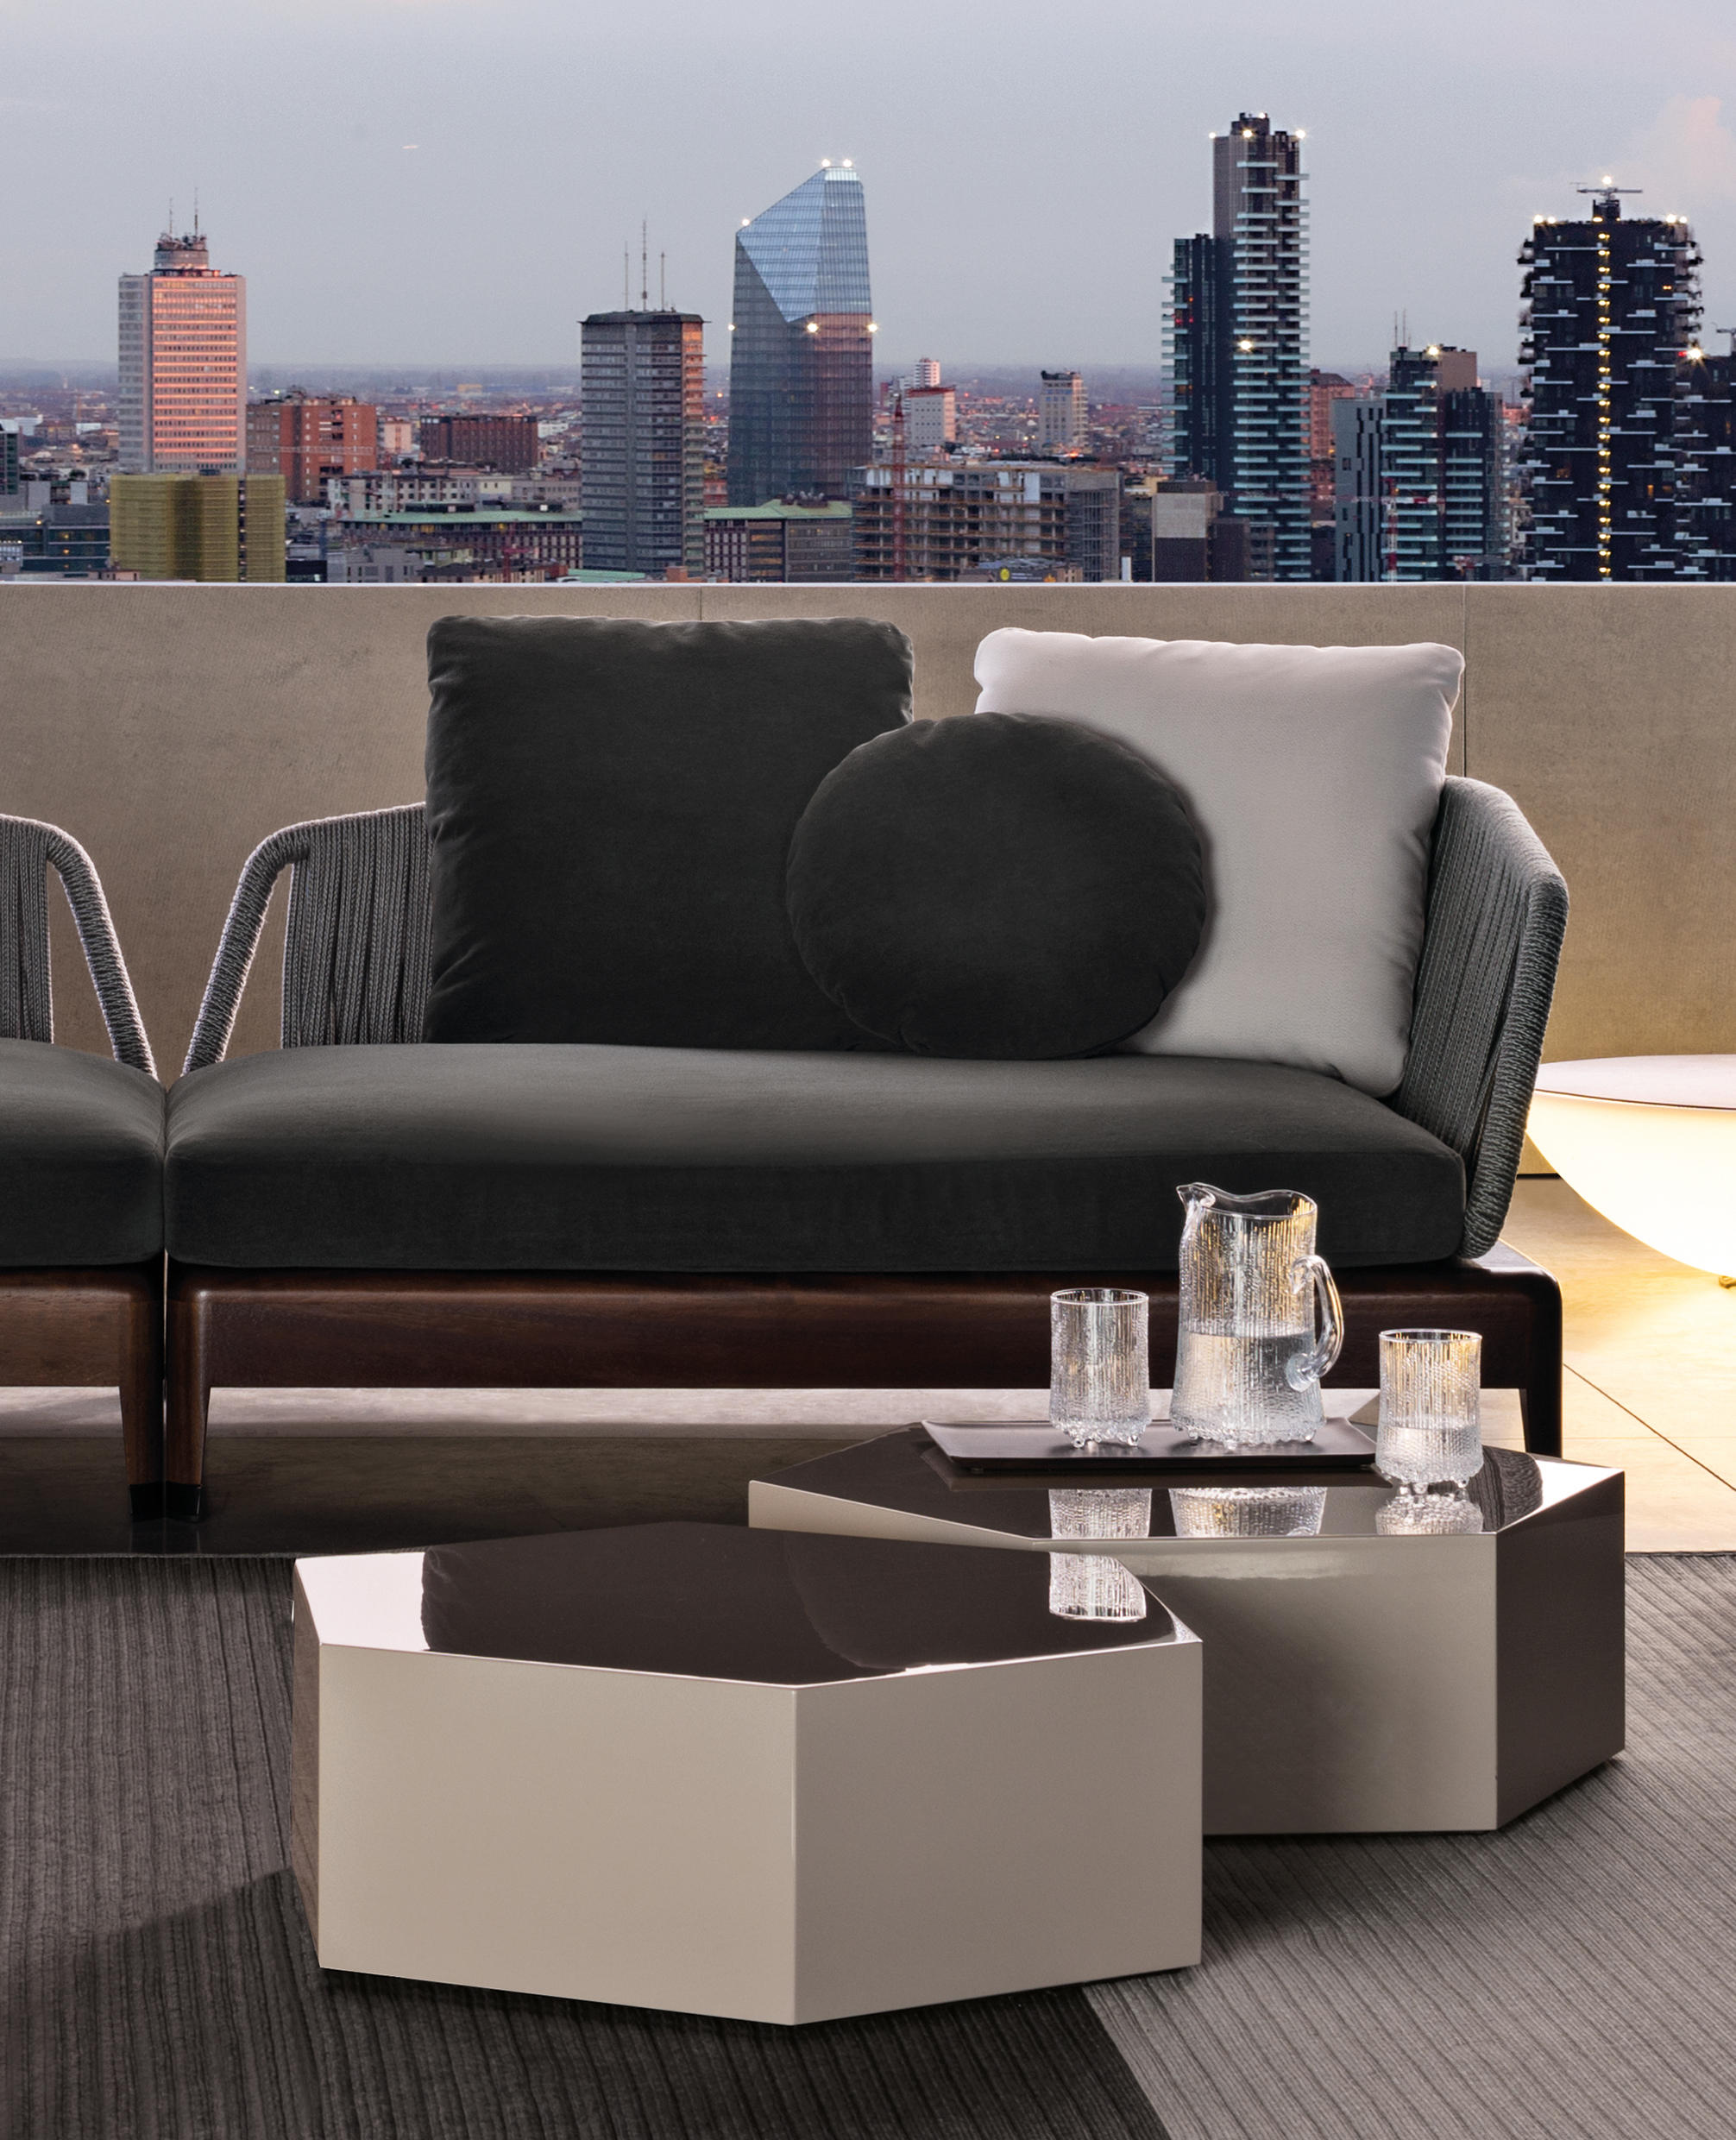 aeron outdoor accent tables side from minotti architonic table behind couch deck furniture set runner small drop leaf kitchen chairs brown end with drawers metal floor threshold